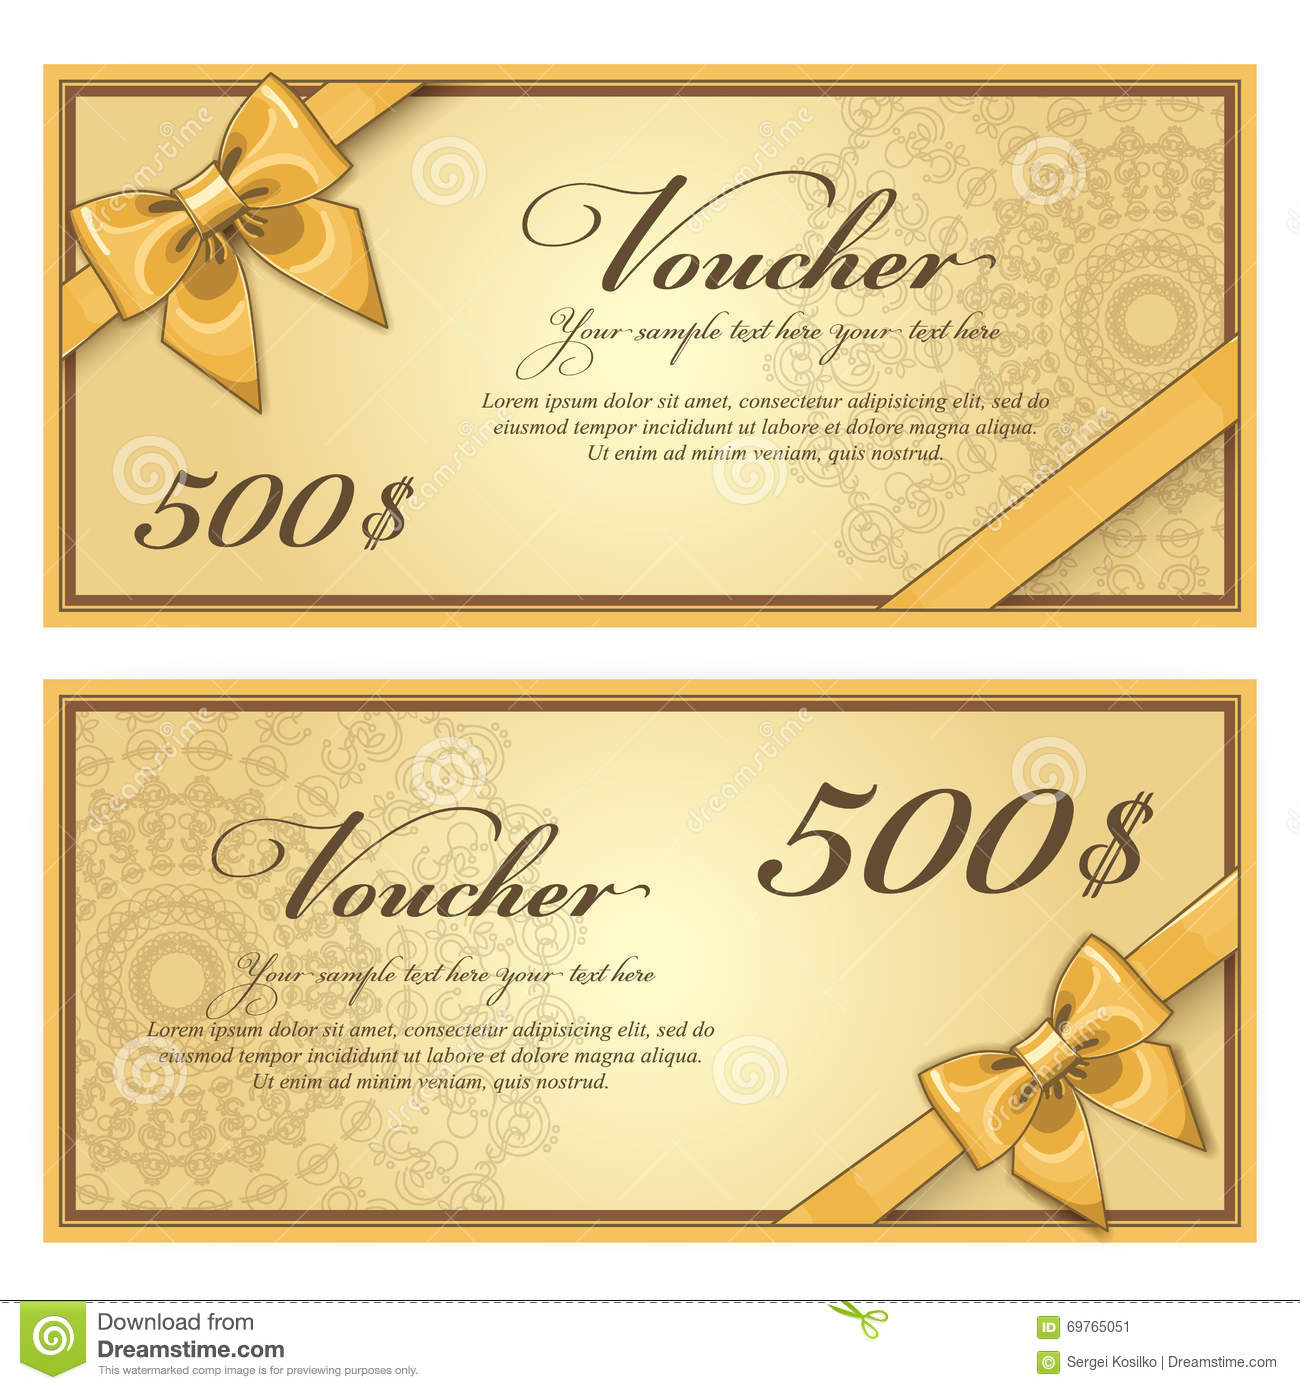 Gift voucher template vector layout stock vector illustration of gift voucher template vector layout cheaphphosting